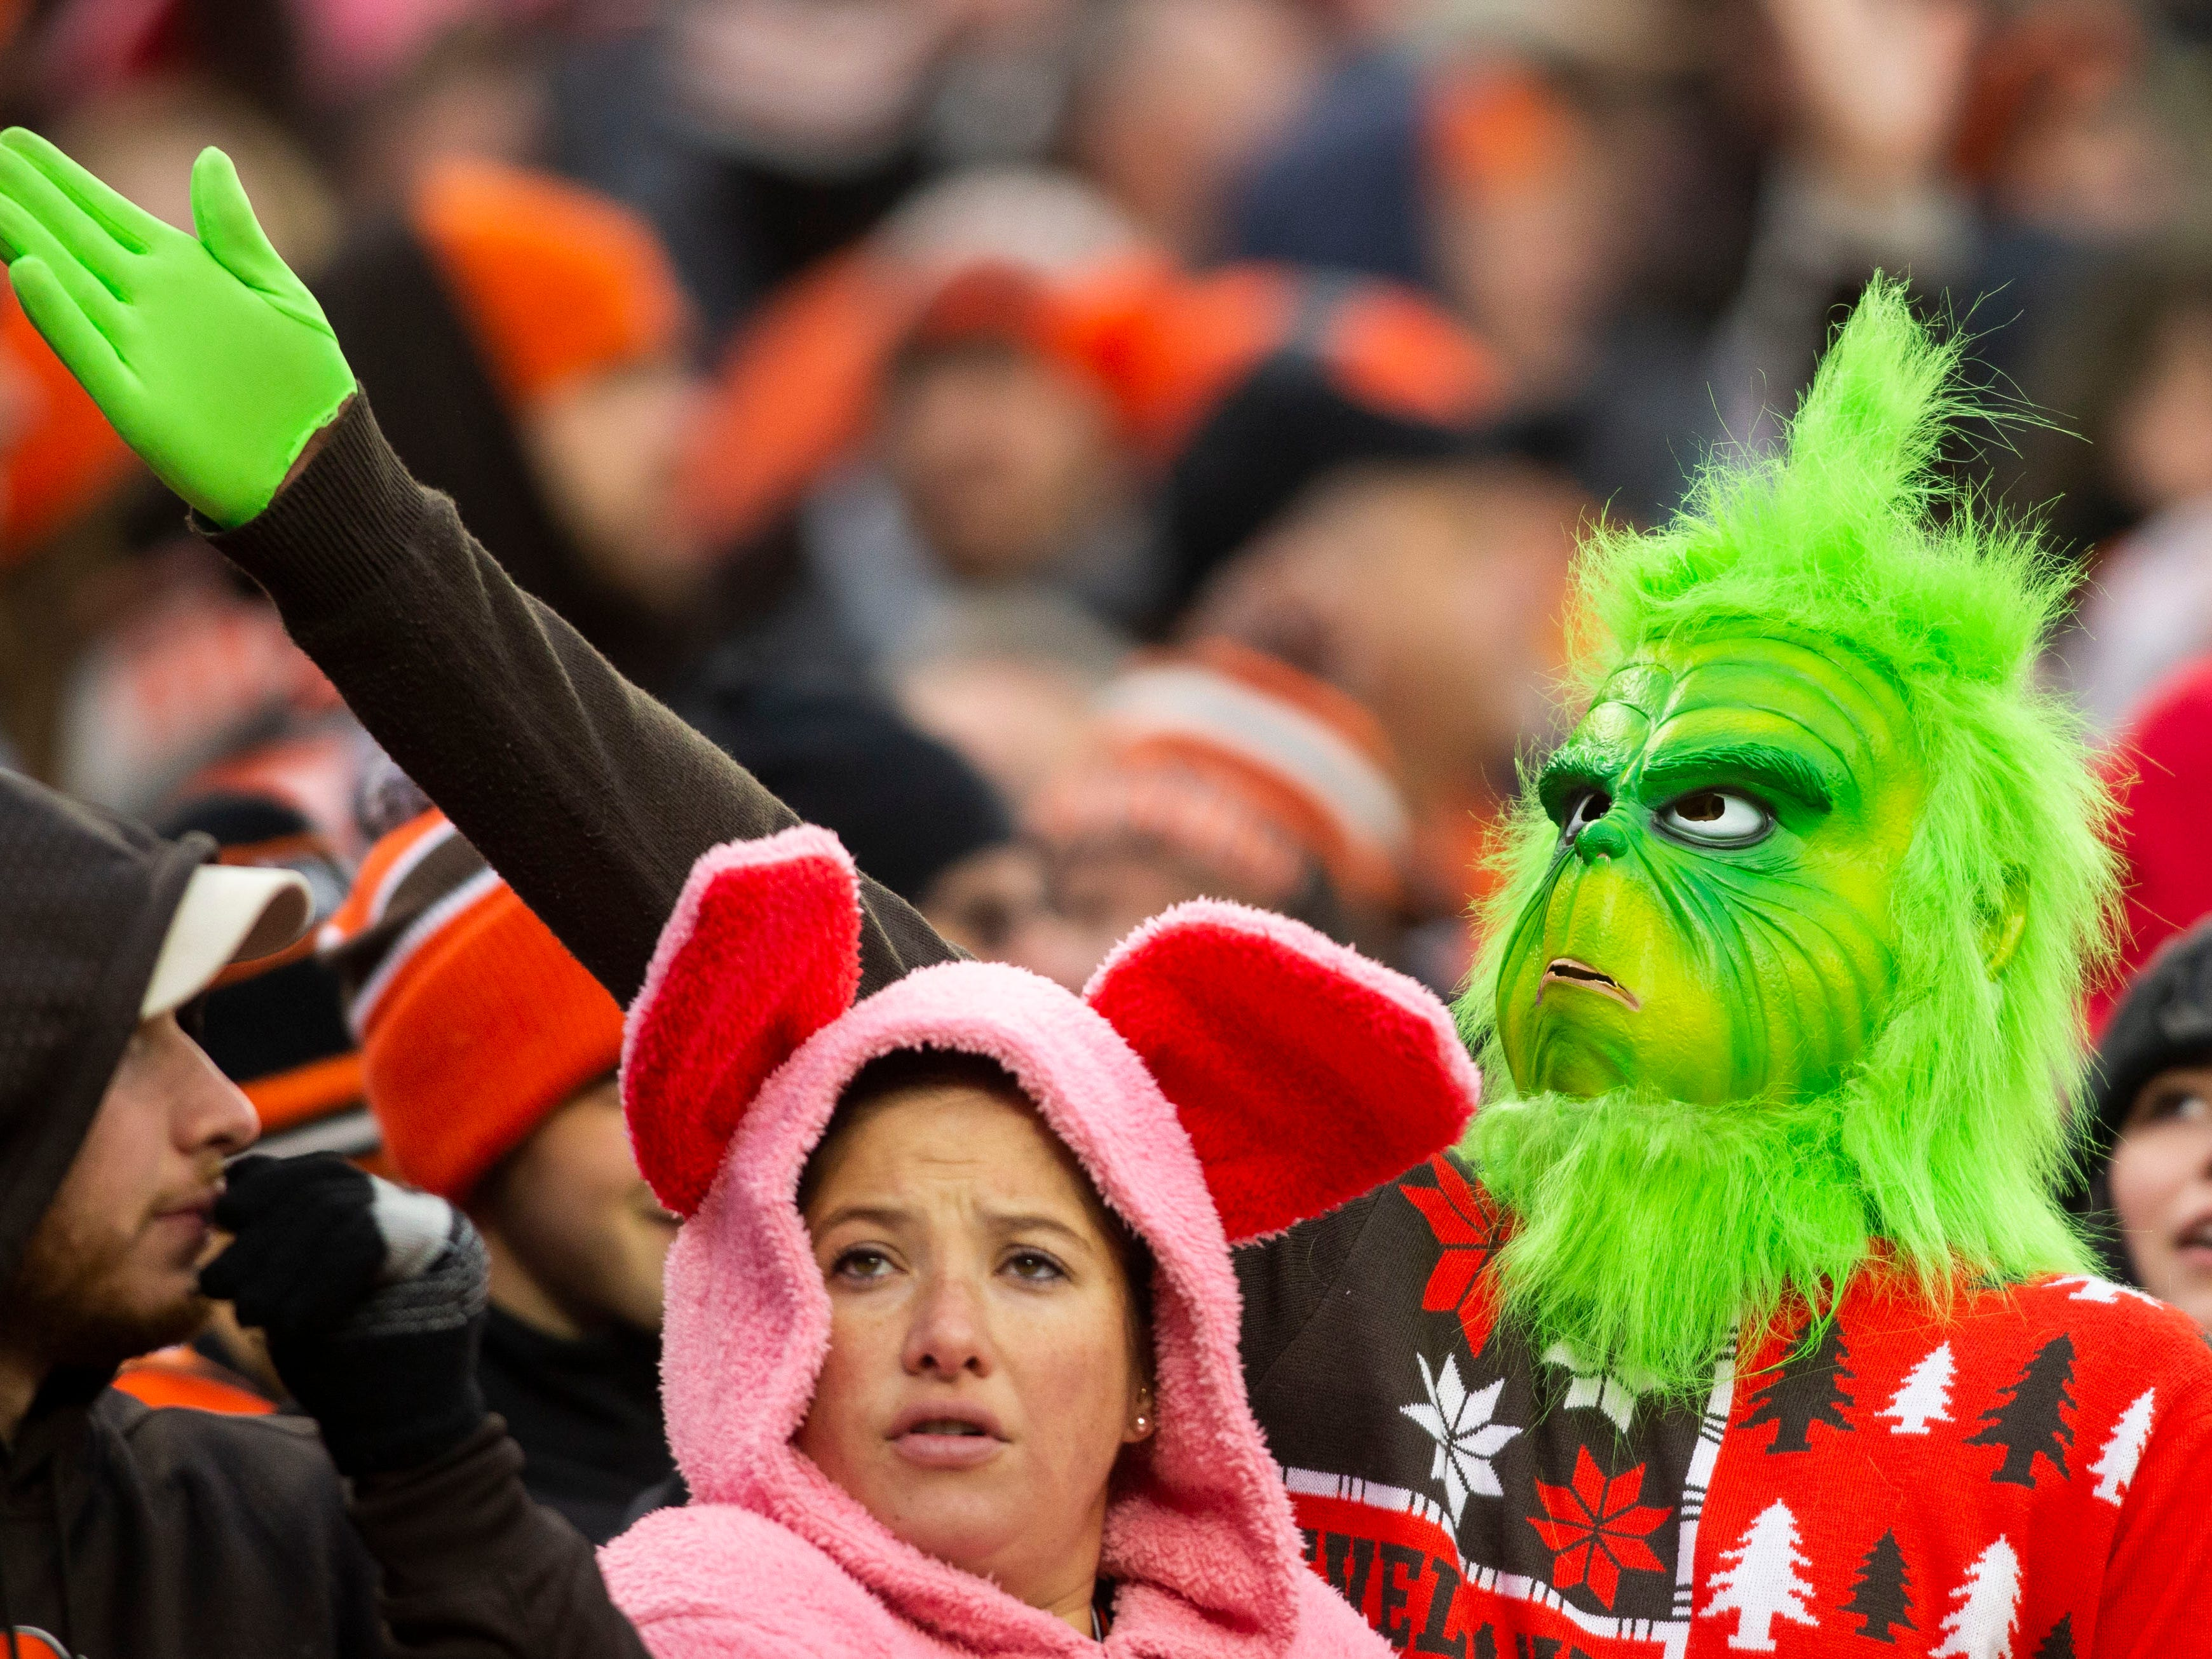 A fan dressed as the Grinch signals for a Cleveland Browns first down during the fourth quarter against the Cincinnati Bengals at FirstEnergy Stadium.